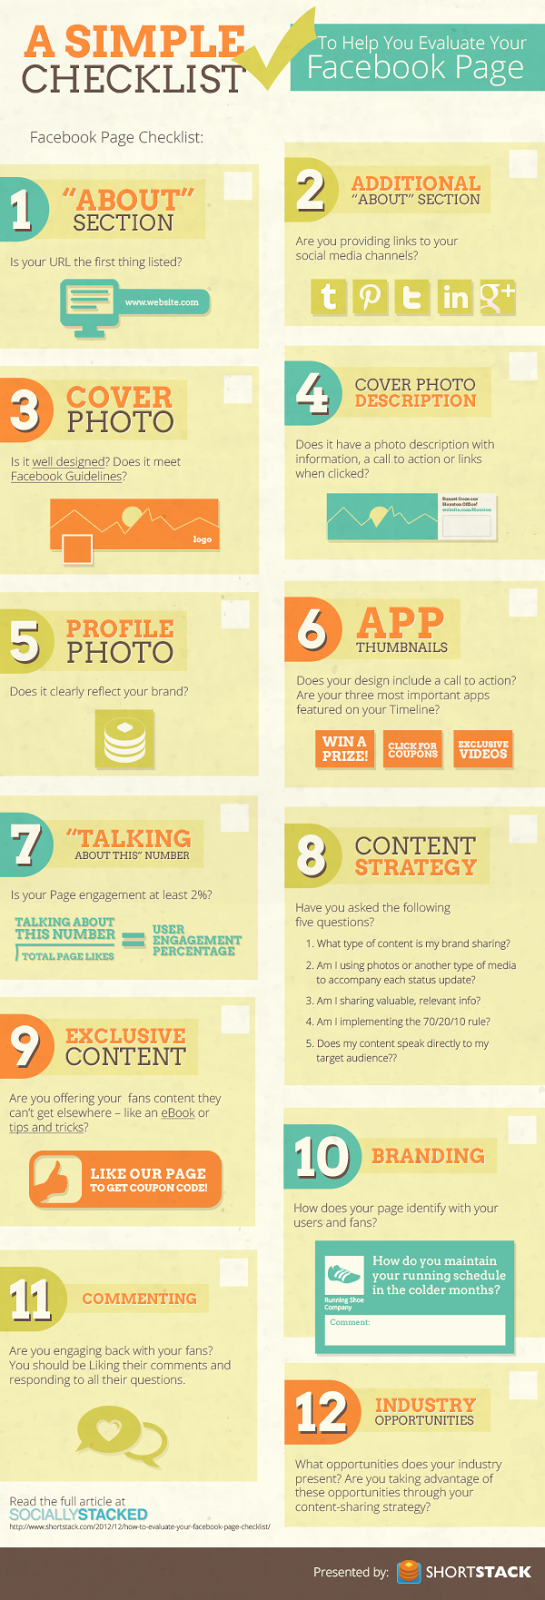 A simple Checklist to help you evaluate your Facebook page